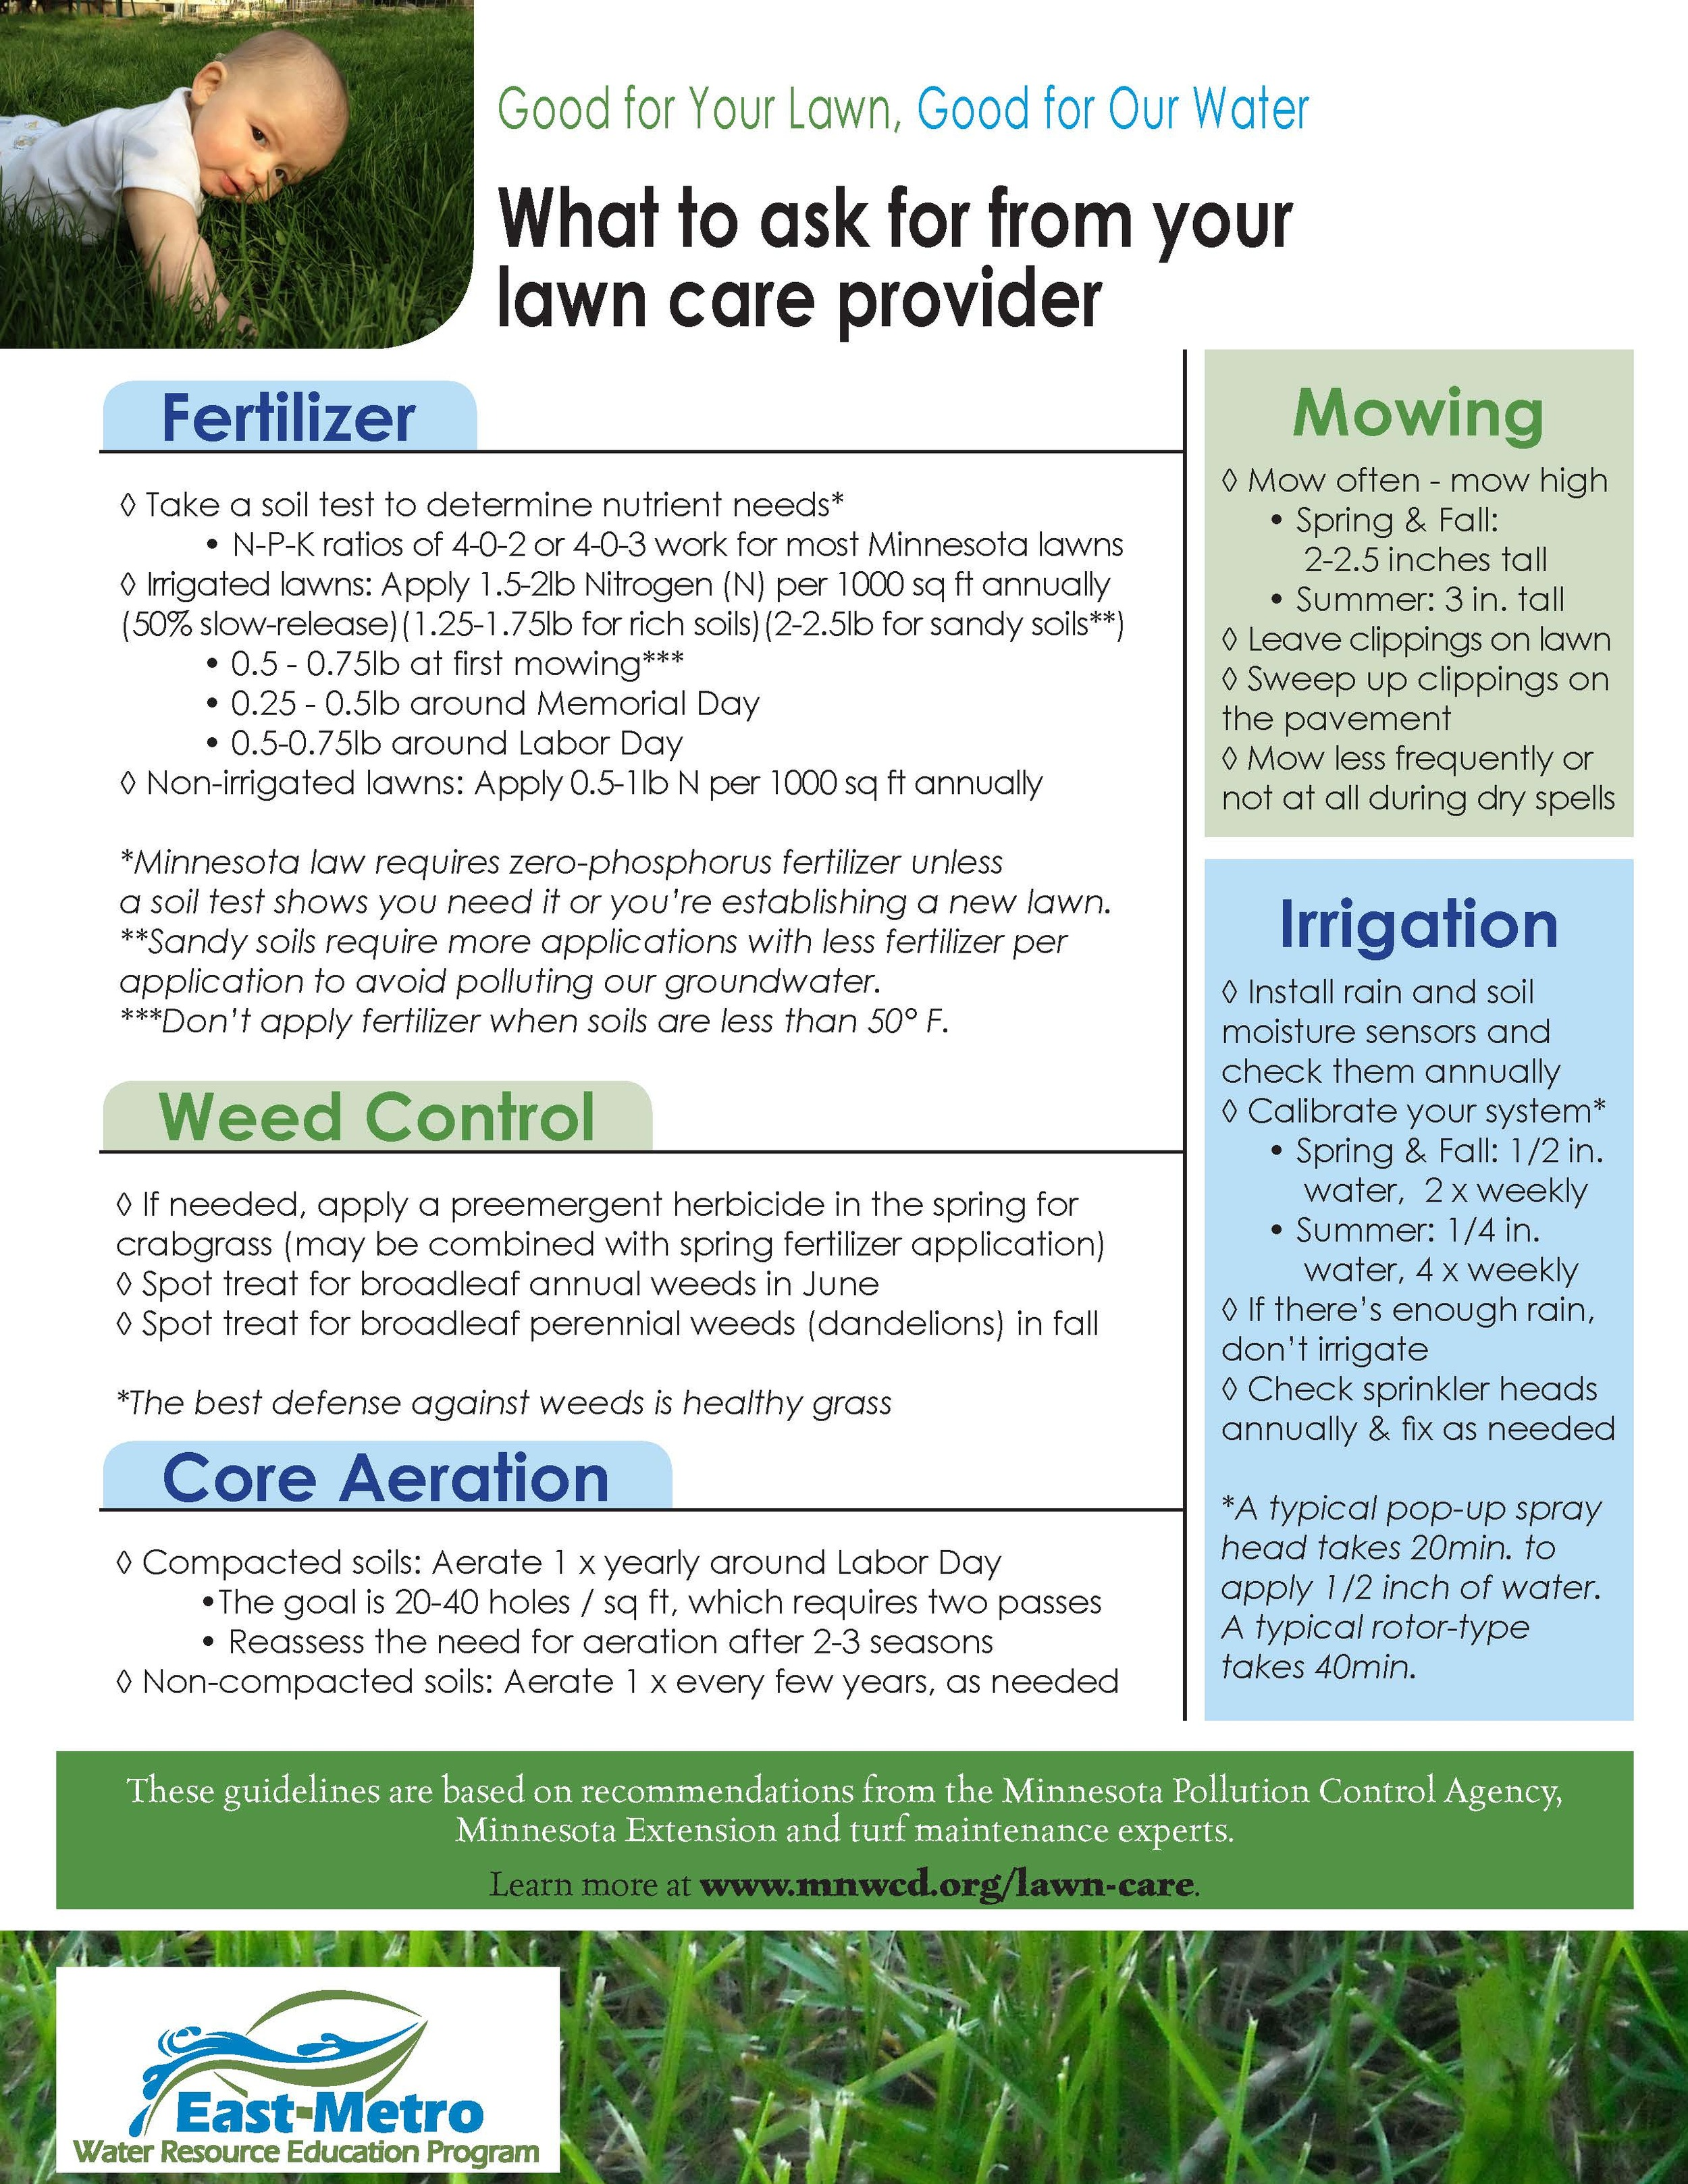 What to ask for from your lawn care provider